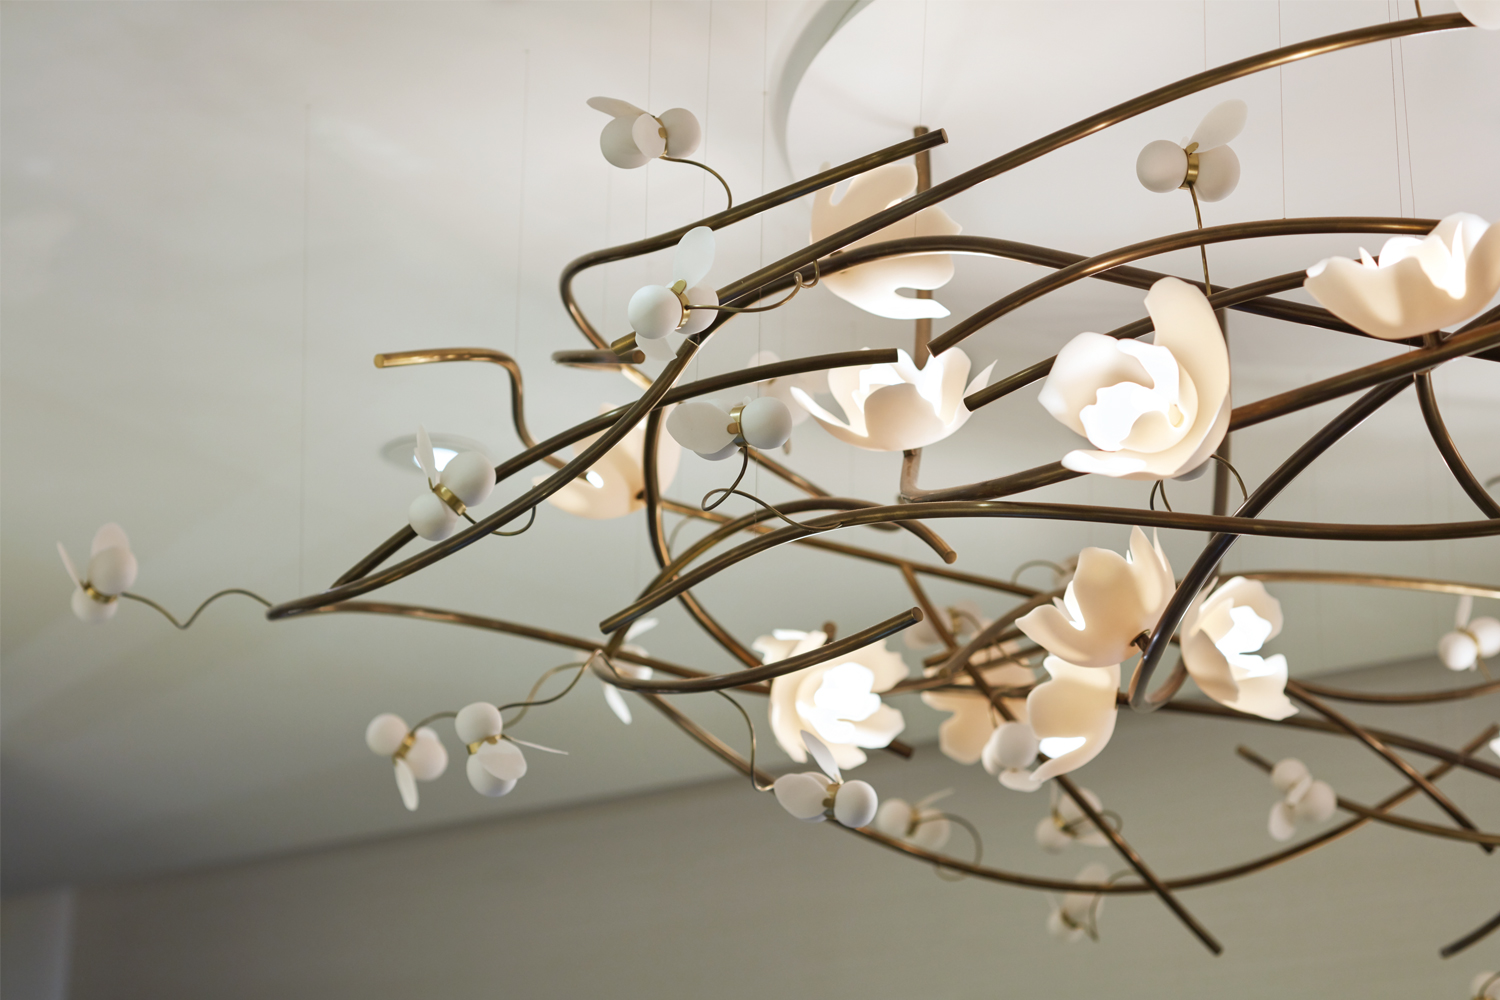 alissa-coe-four-seasons-spa-chandelier-welcome-gallery.jpg